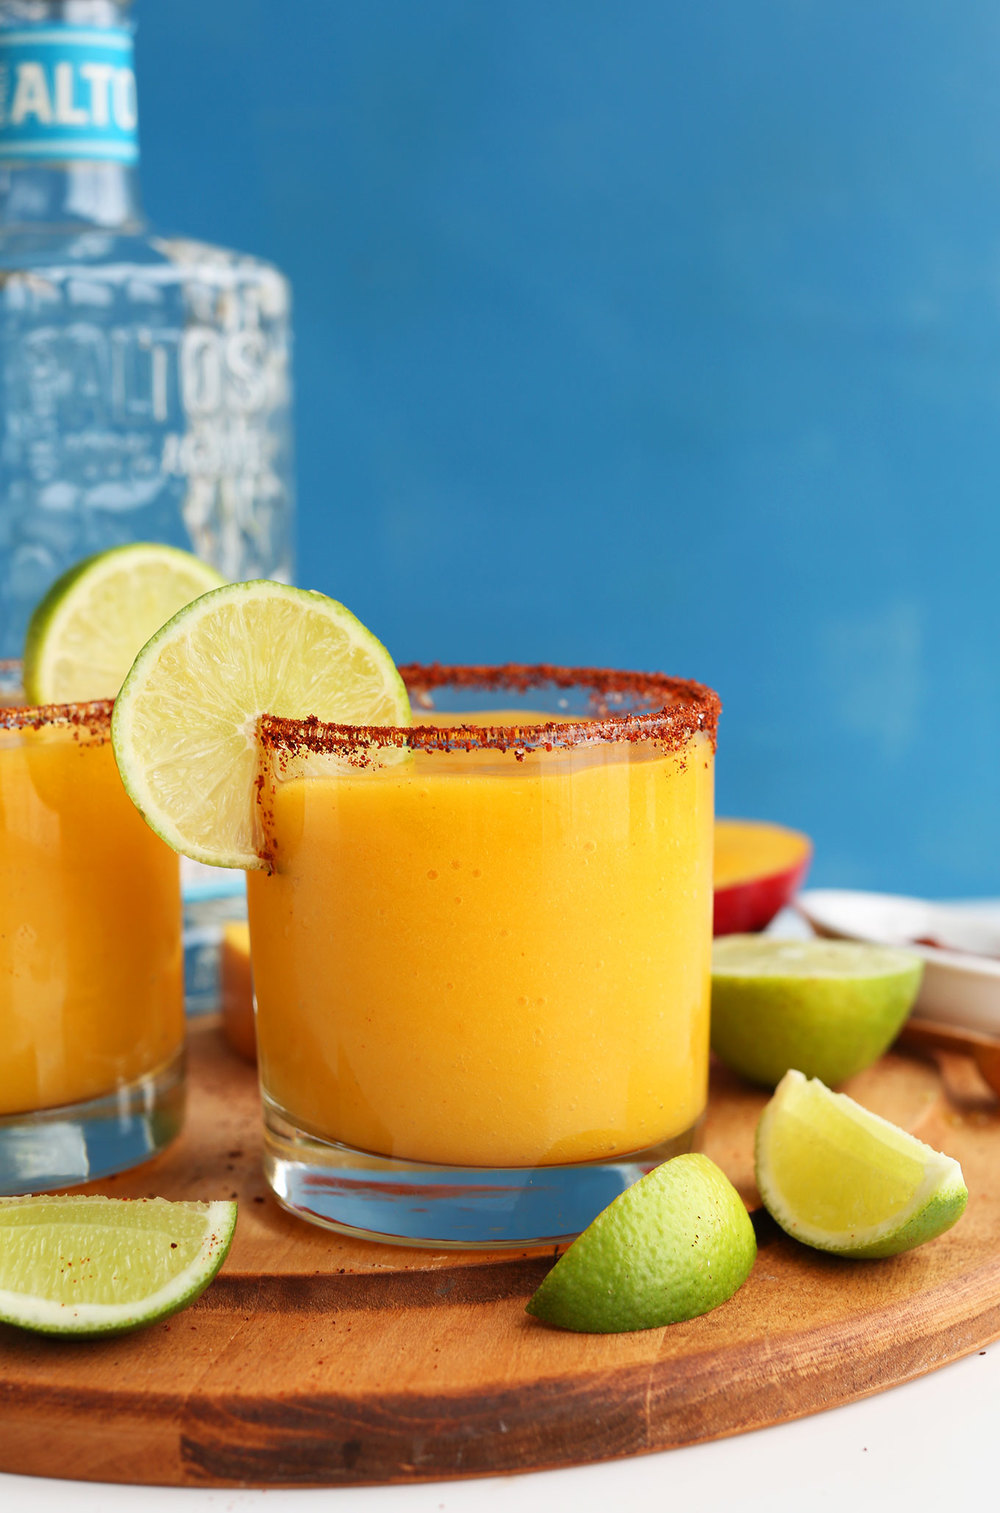 SIMPLE-Mango-Chili-Lime-Margaritas-Perfectly-tart-sweet-and-spicy-vegan-minimalistbaker.jpg